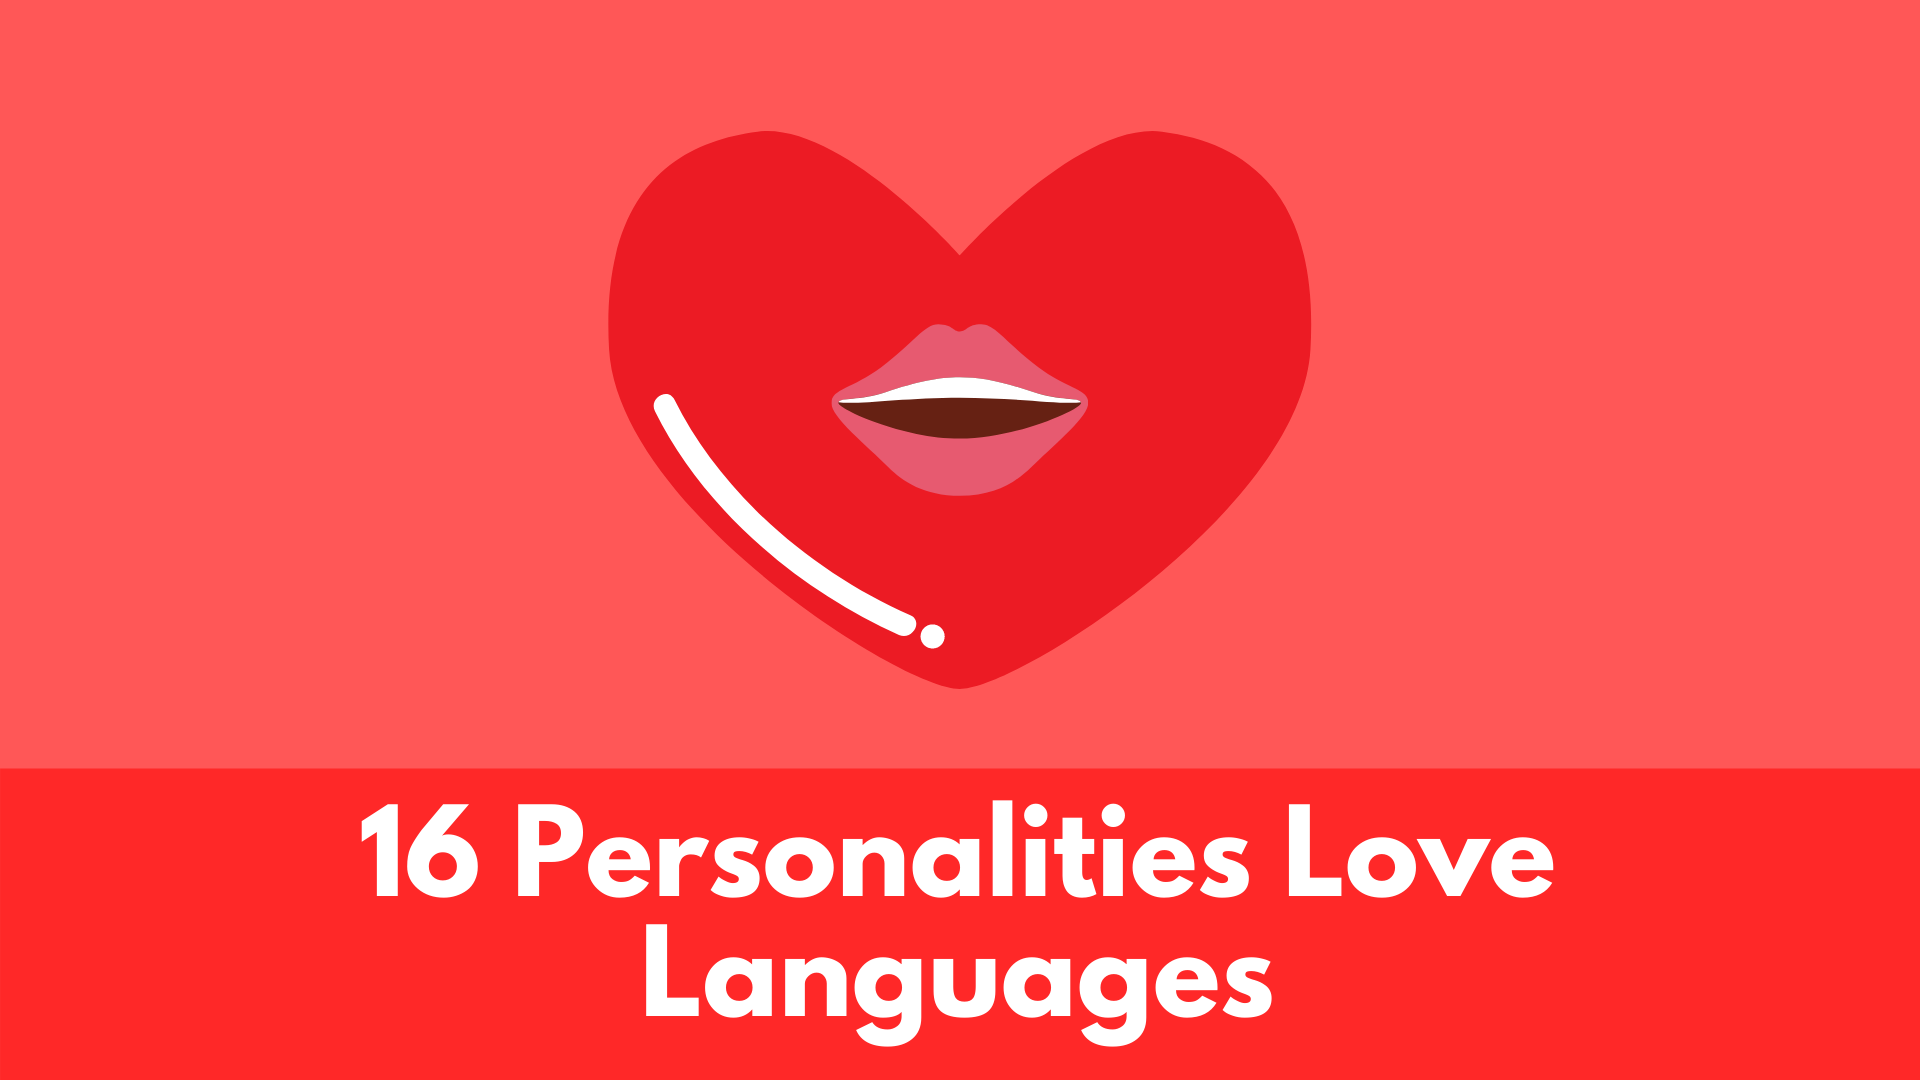 The 16 Personalities Love Languages